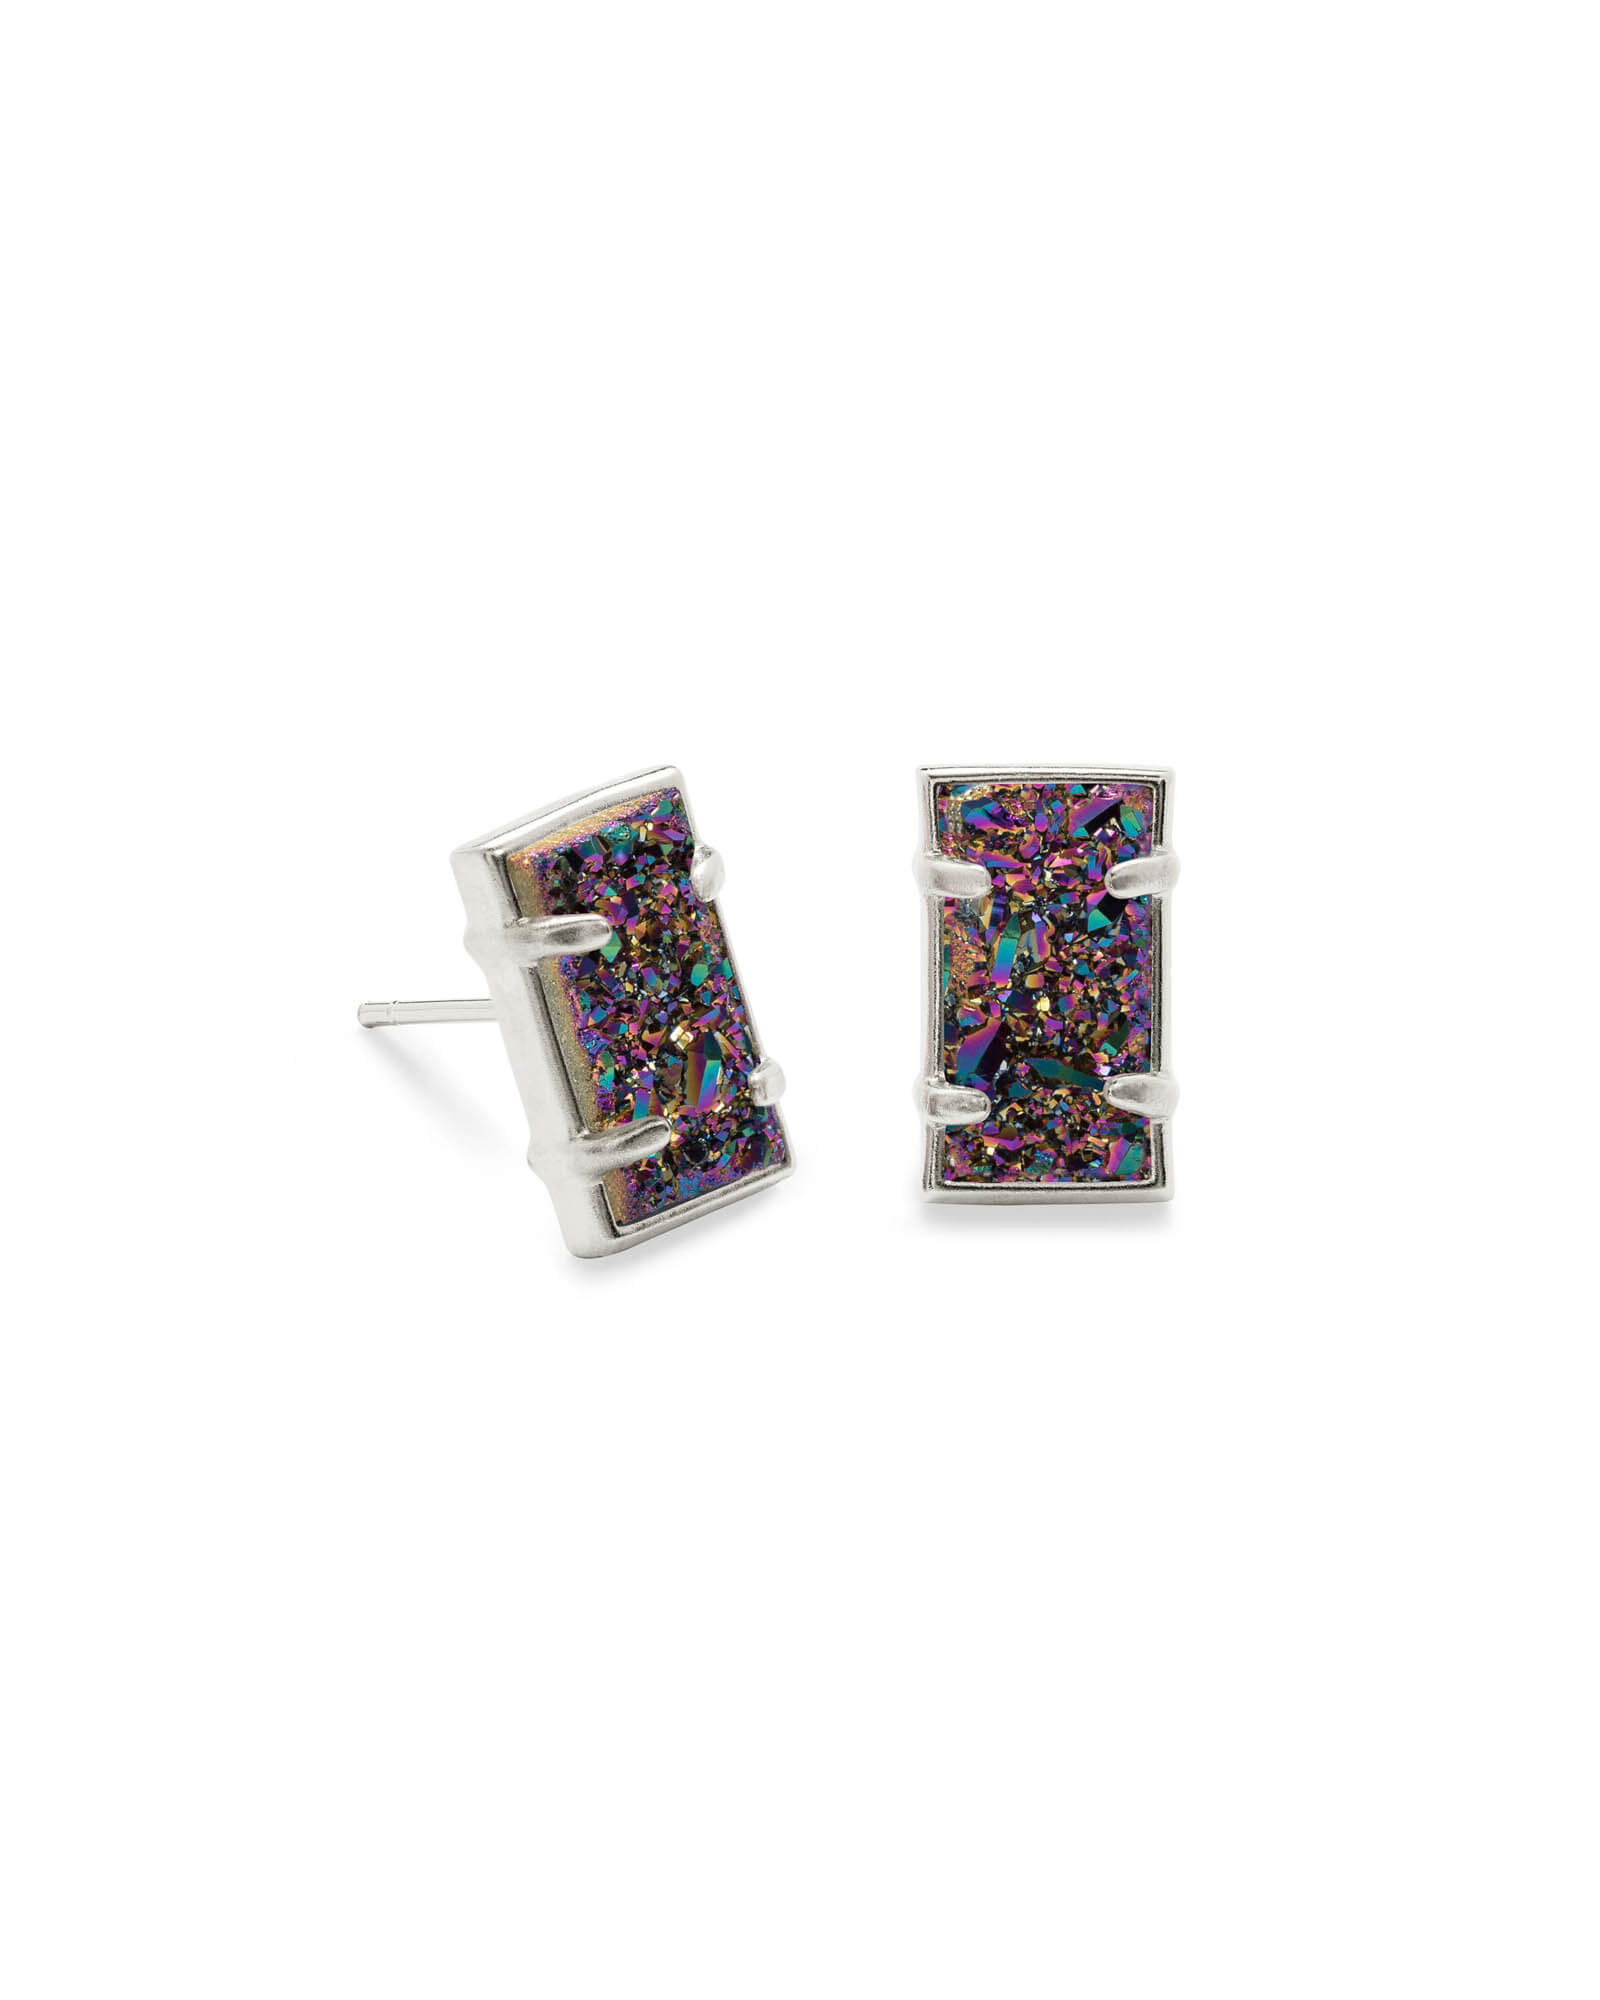 Paola Silver Stud Earrings in Multicolor Drusy